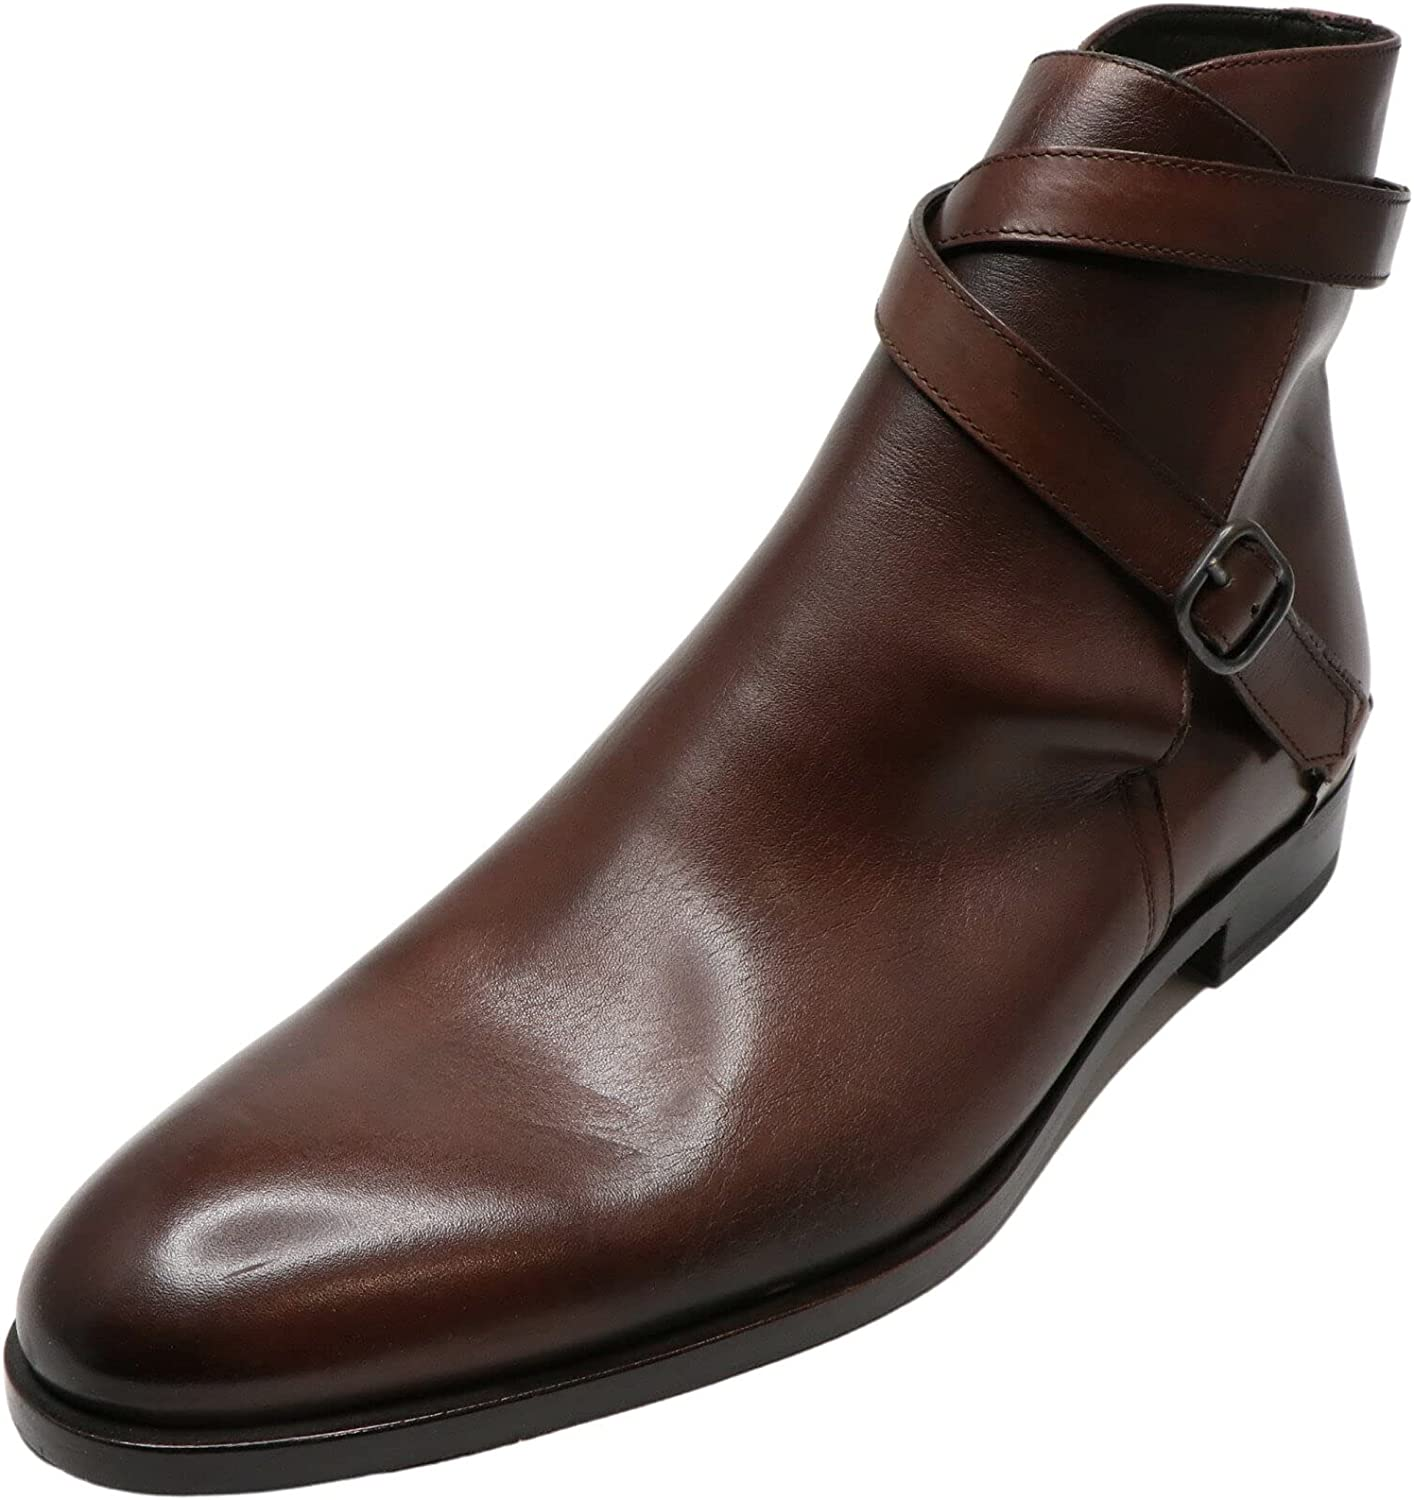 Fratelli Rossetti Men's Toledo Antique High-Top Leather Oxford & Derby